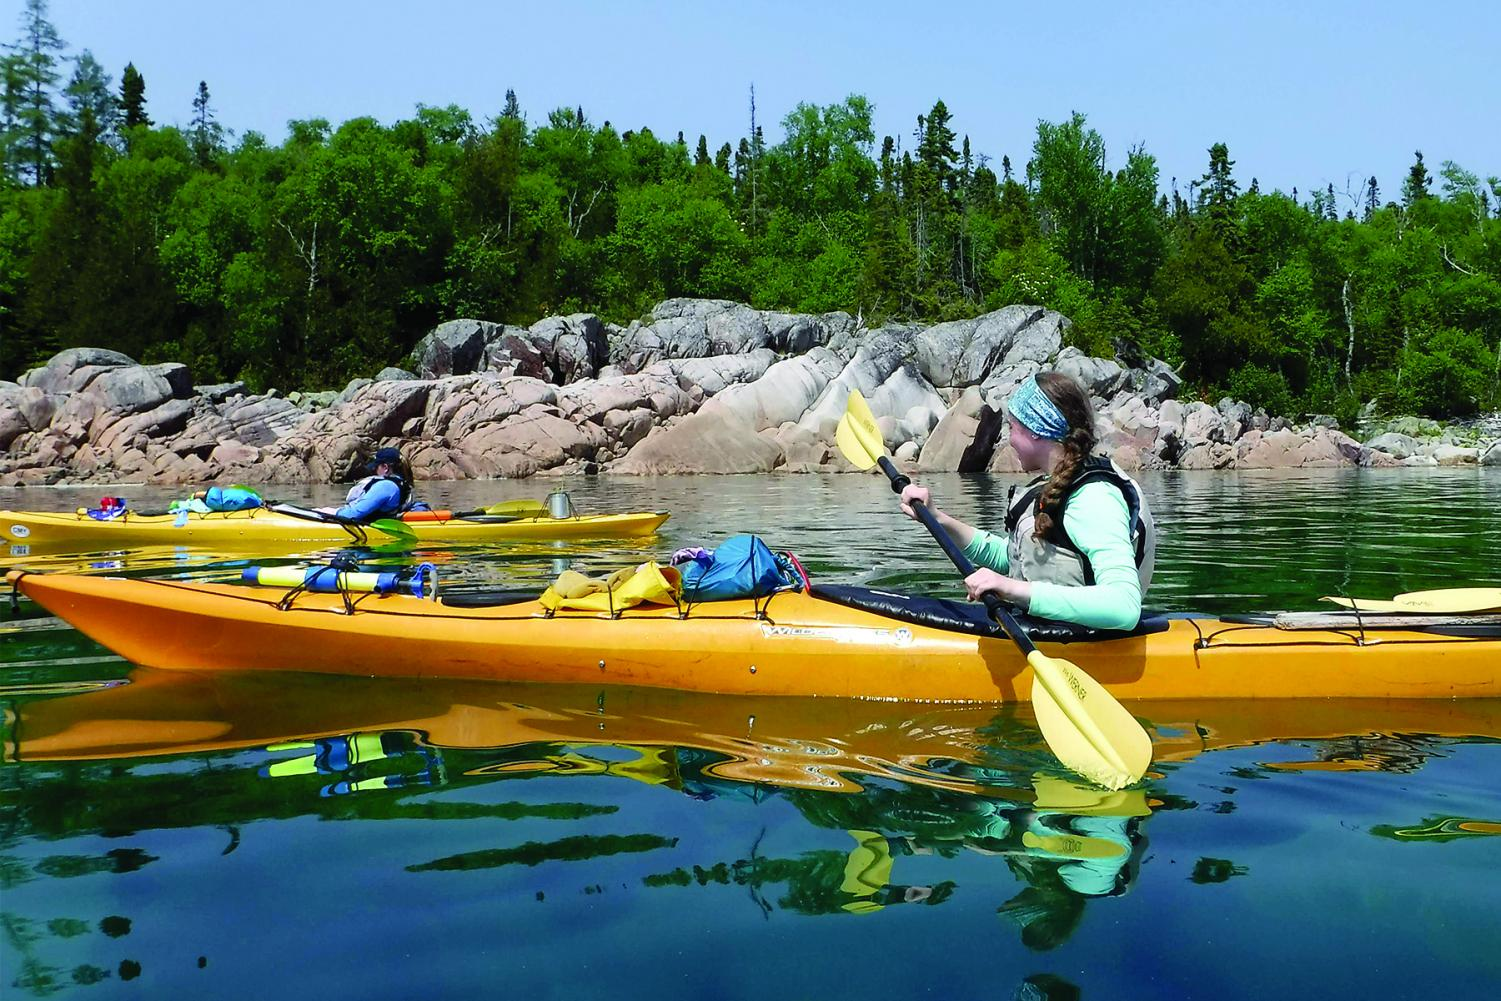 KAYAKING KAUFMAN. Junior Izzy Kaufman-Sites kayaks on Lake Superior on her 25-day sea kayaking trip this summer. The trip was through YMCA Camp Manito-Wish and she traveled 310 miles in Ontario from Agawa Bay to Silver Inlet.